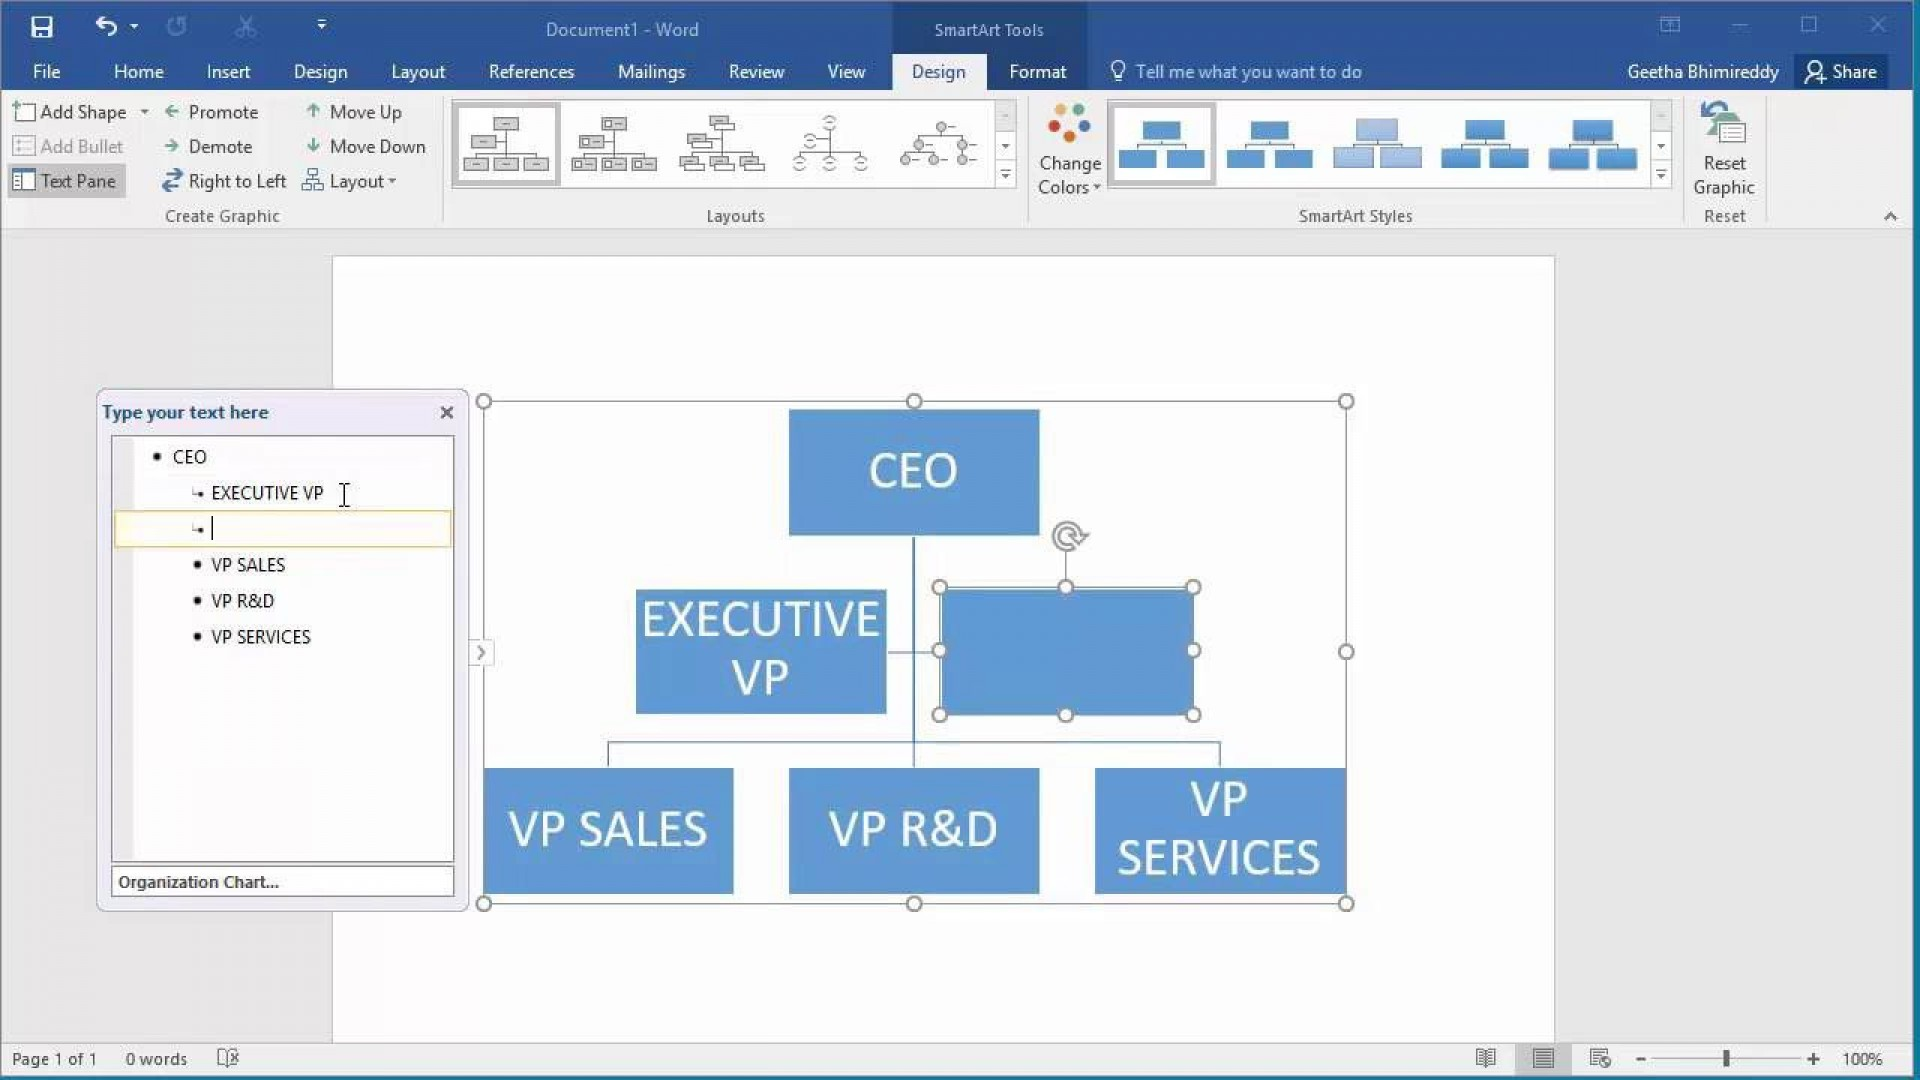 006 Unforgettable Microsoft Organizational Chart Template Word Sample  Free 2013 Hierarchy1920